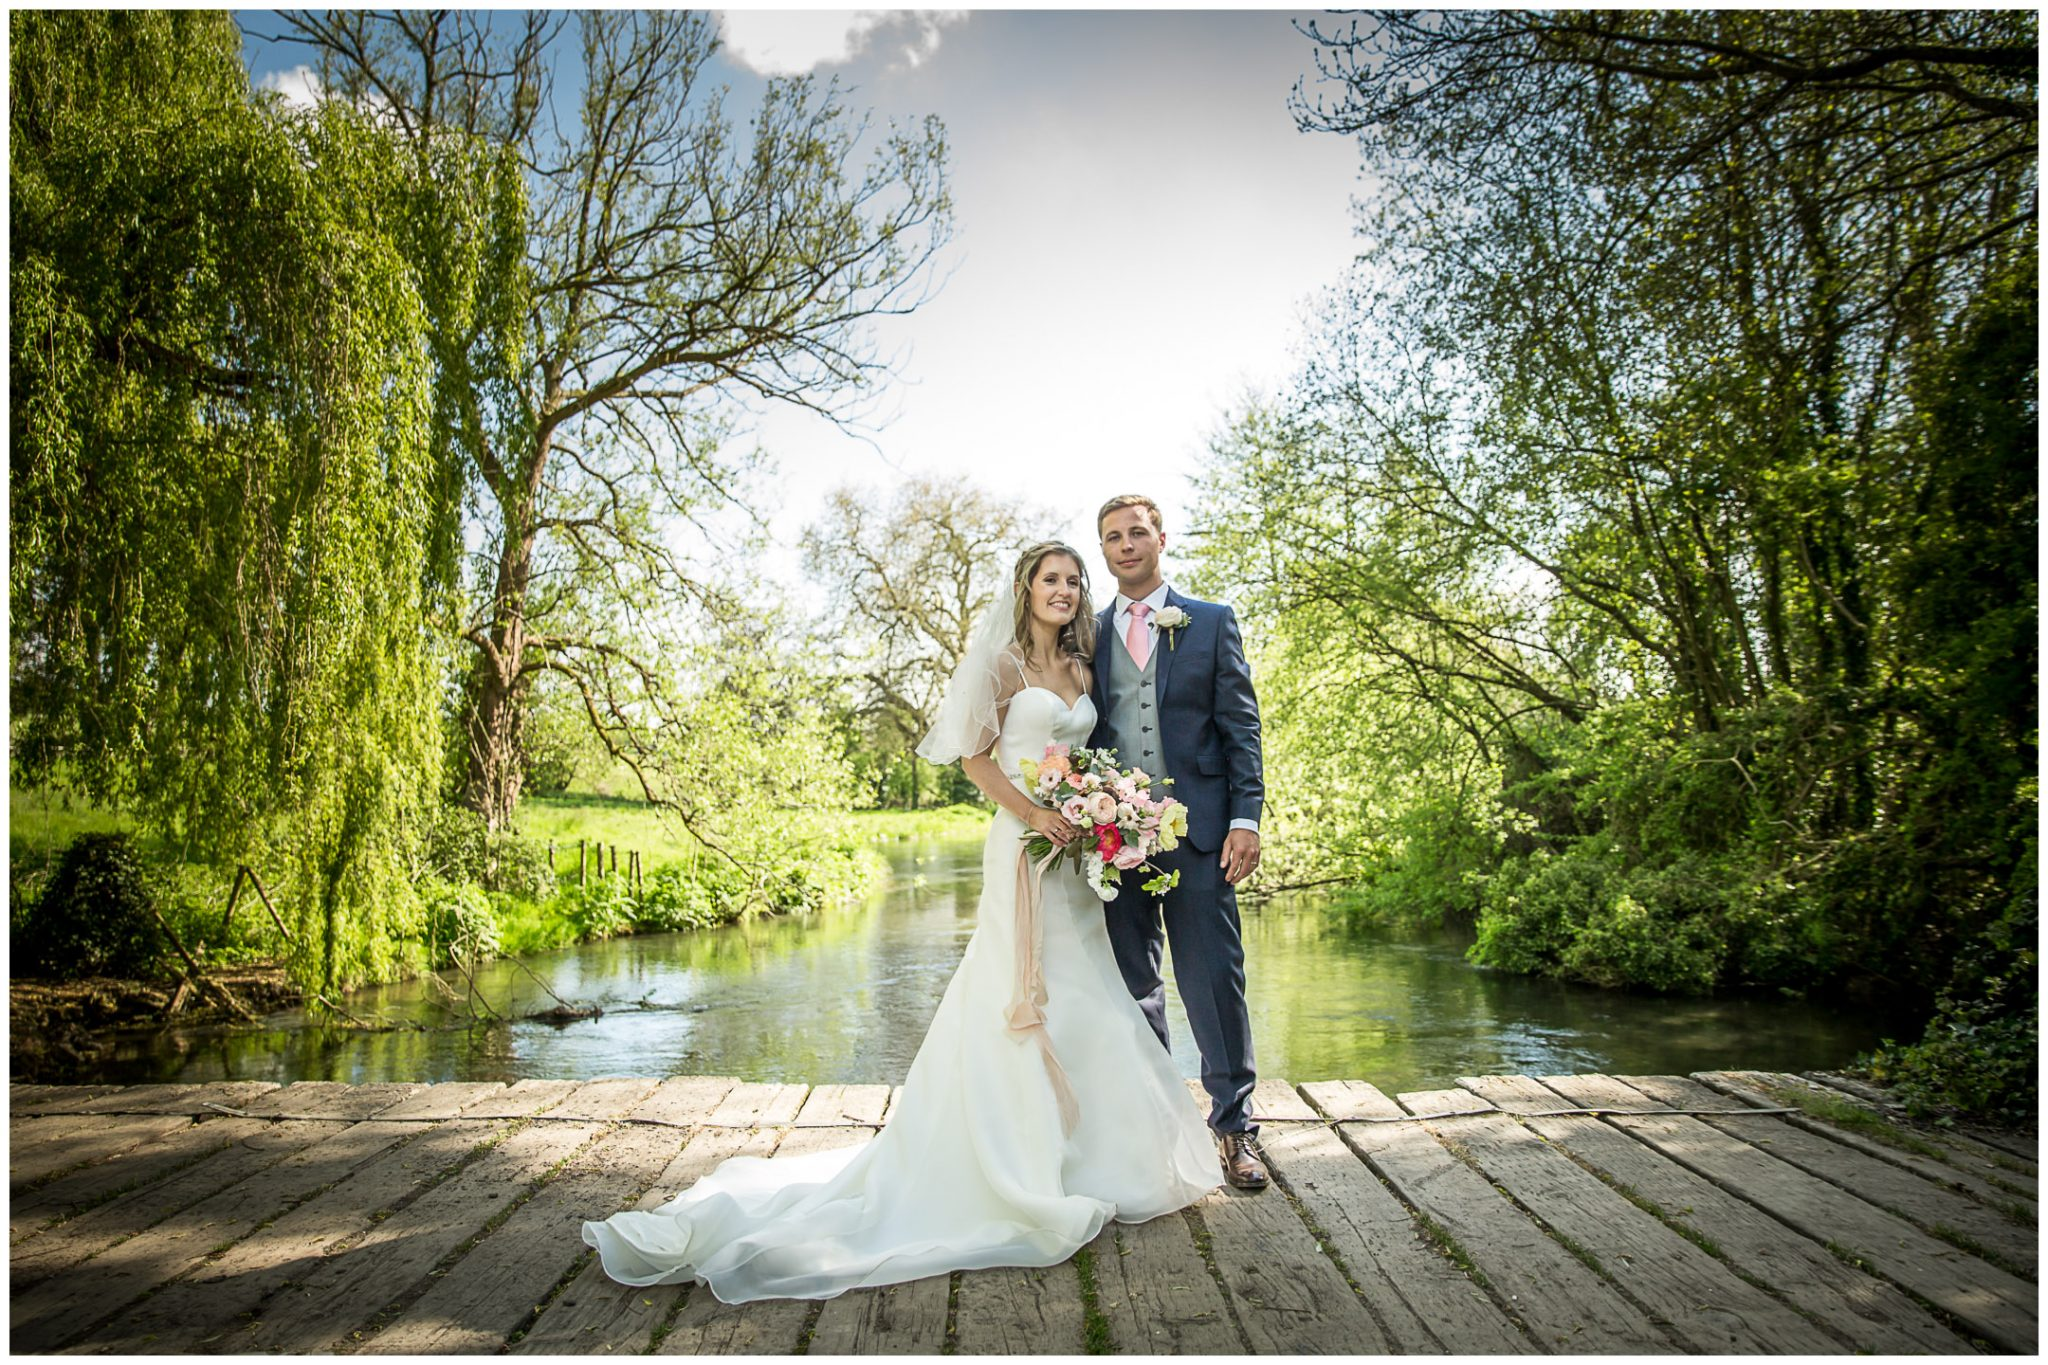 Colour portrait of bride and groom in summer shade by river